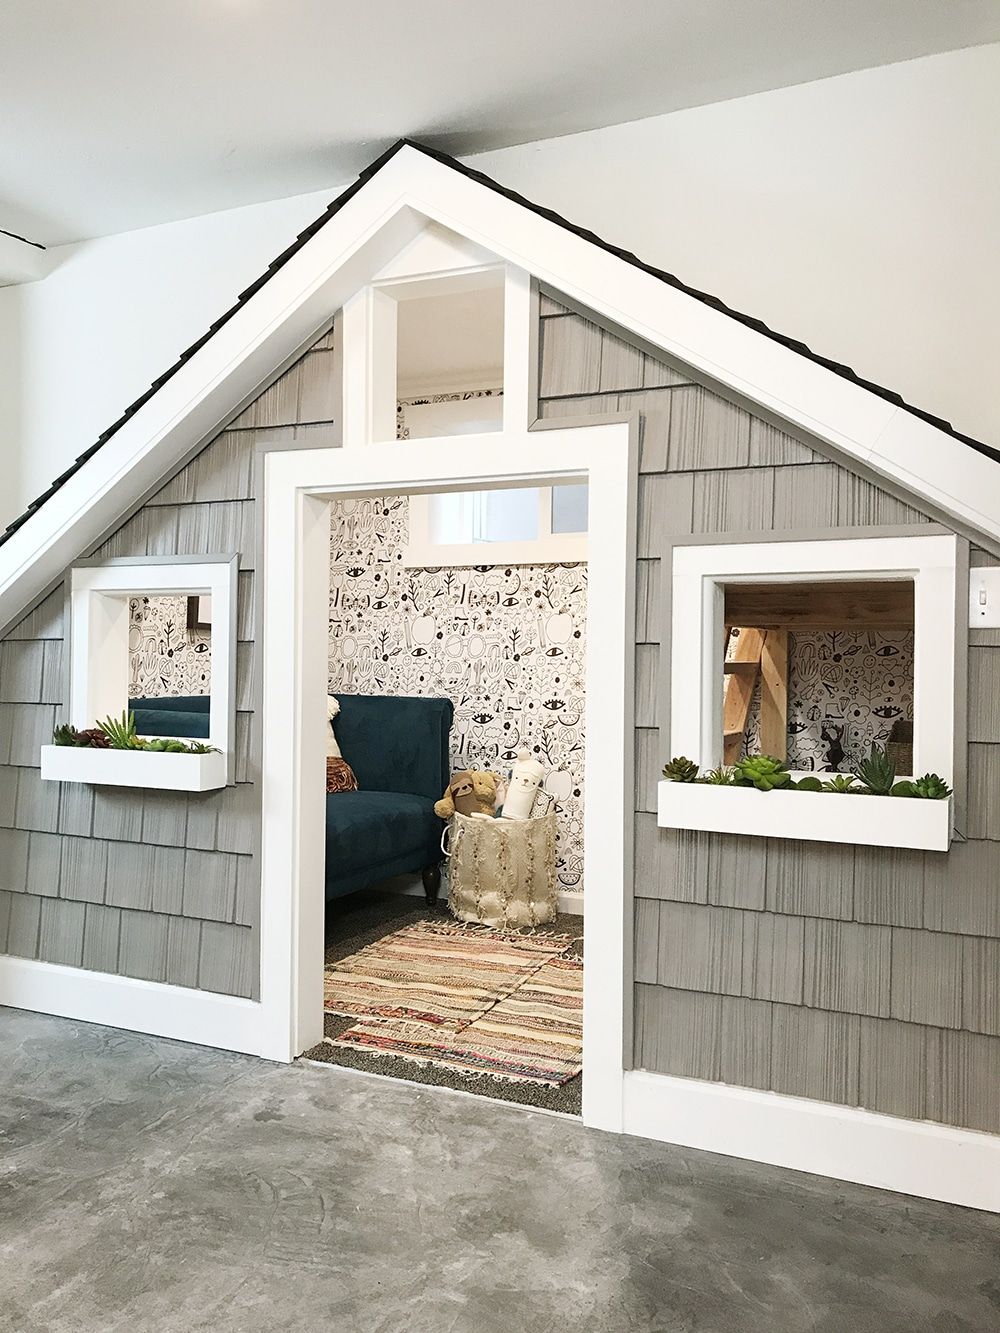 Before And After: The Sweetest Small Indoor Playhouse! - Chris ...